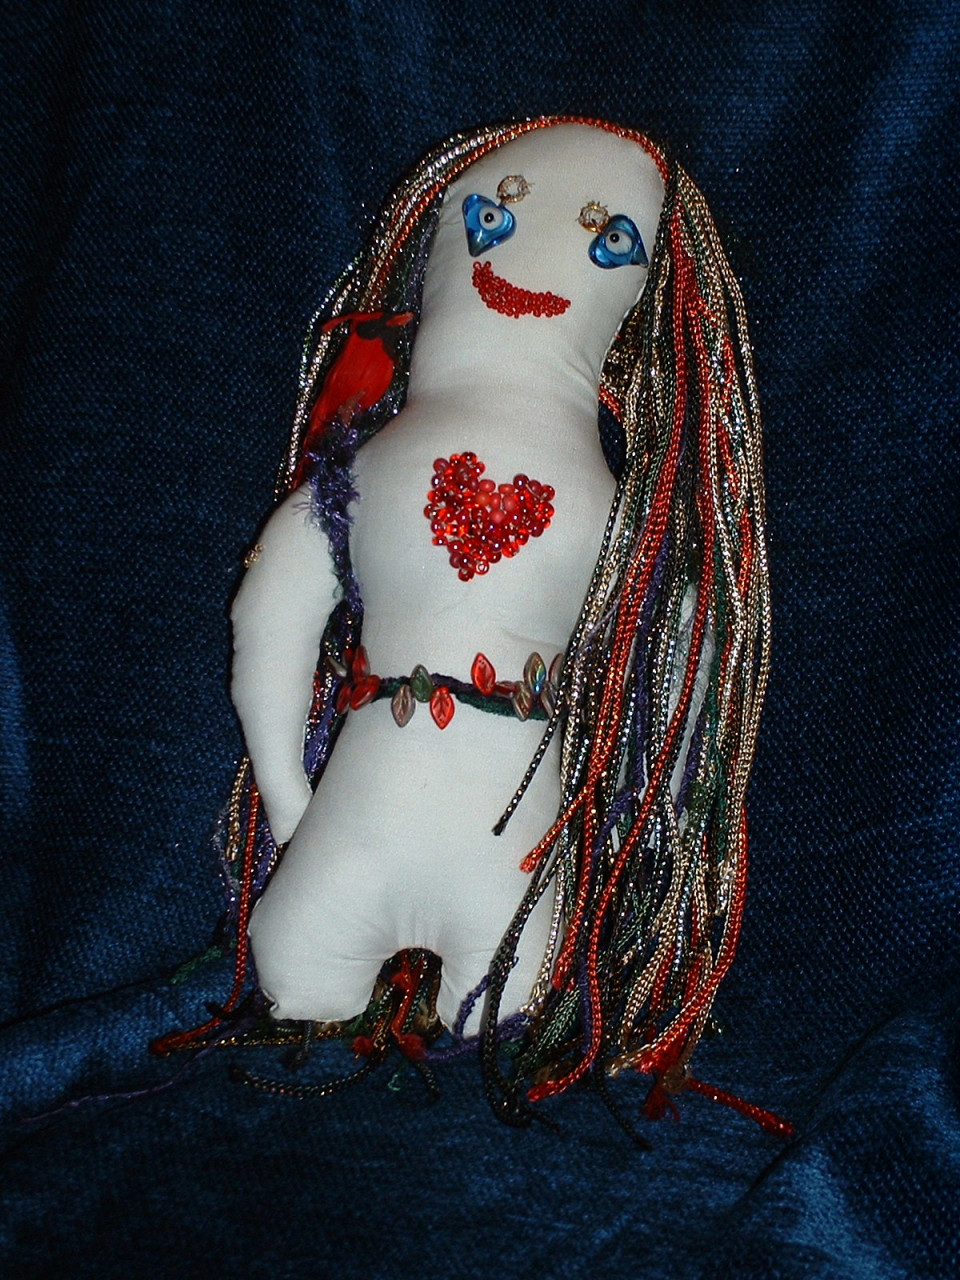 feral child doll for Aquarius new moon